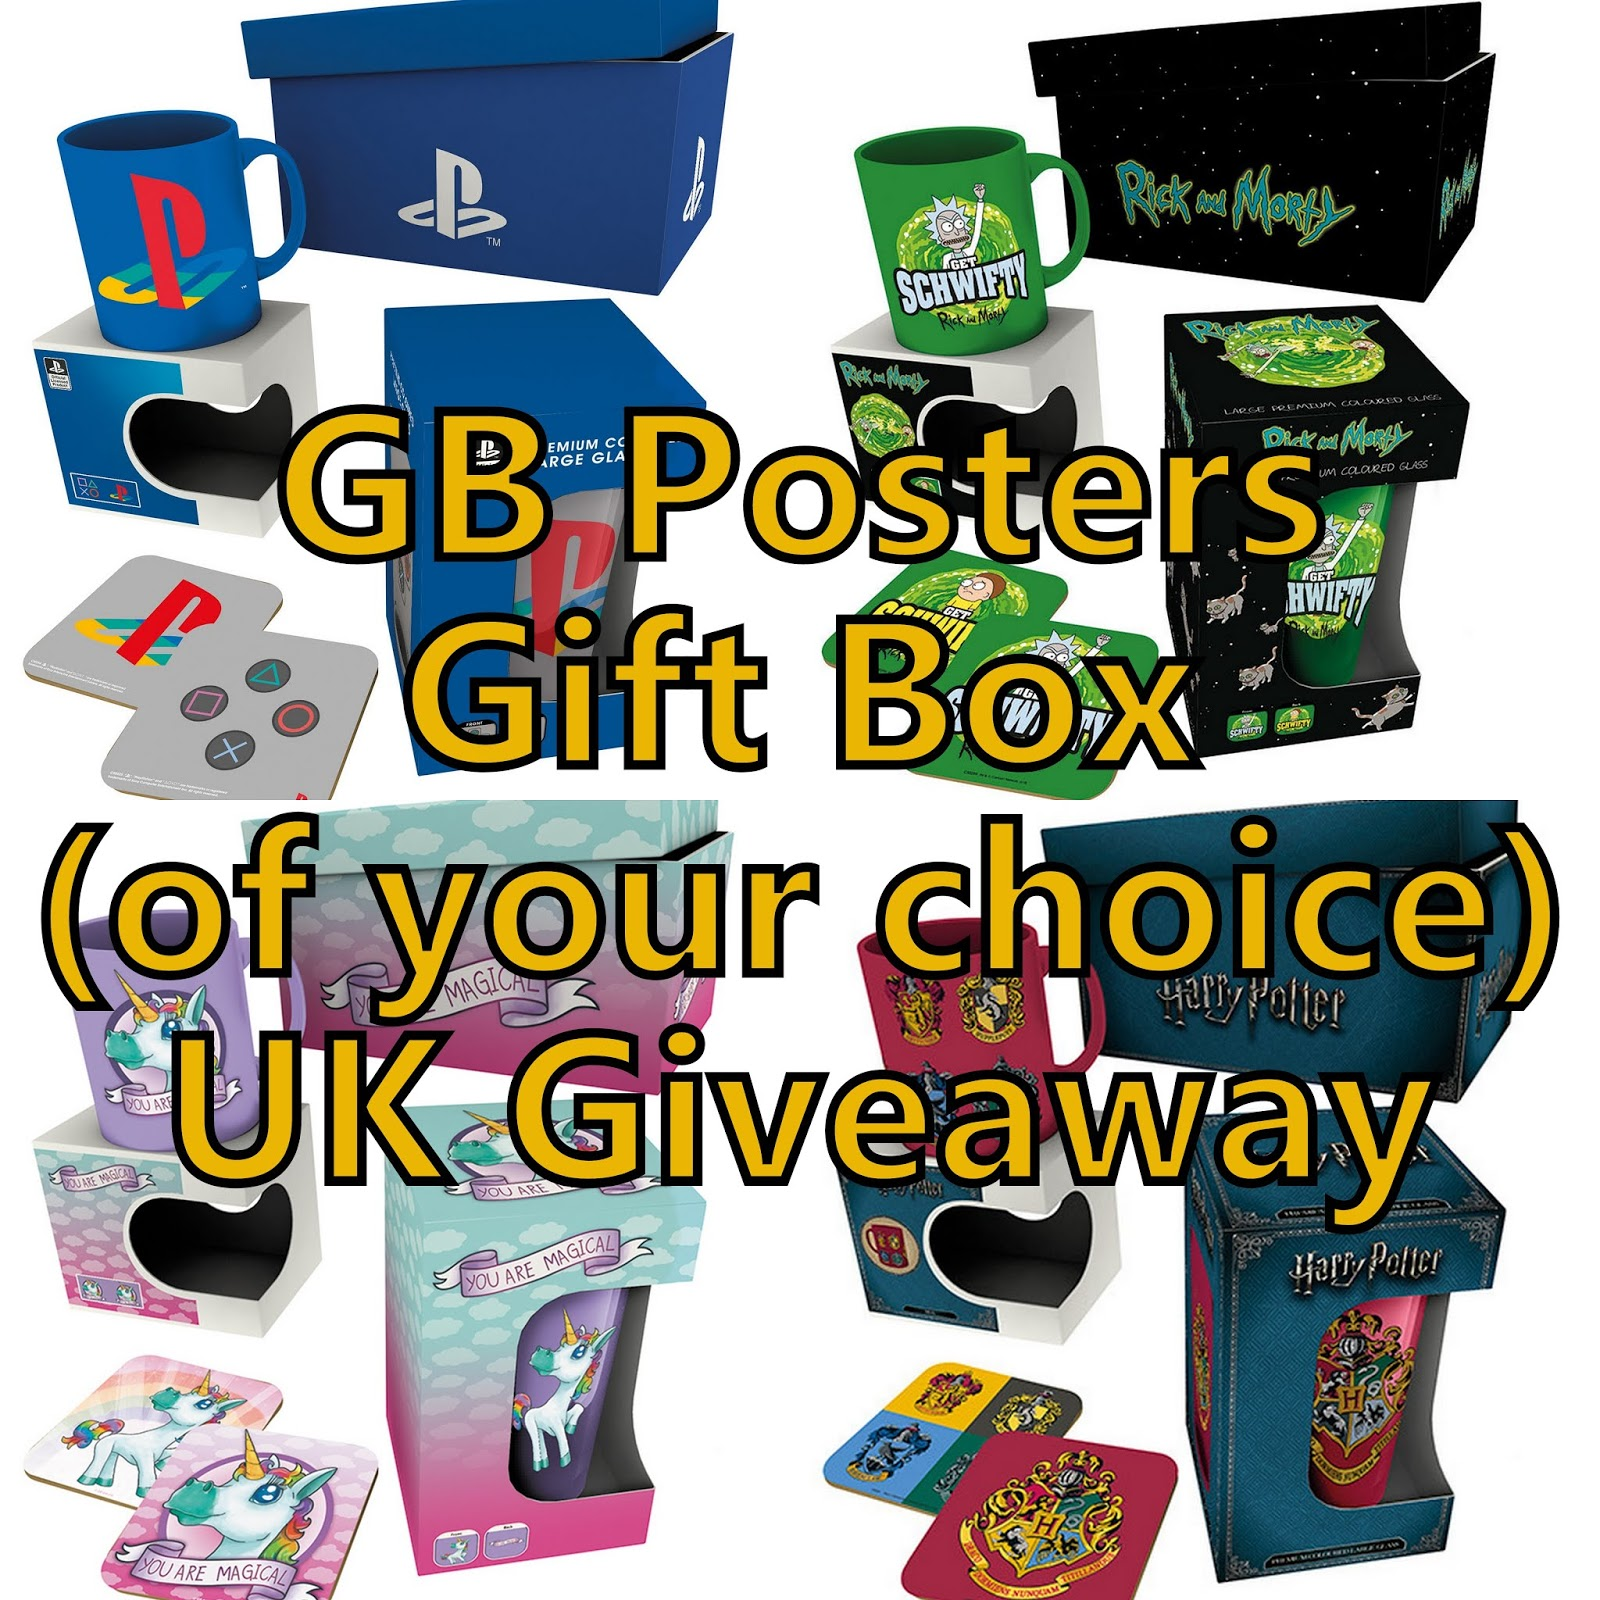 the brick castle gb posters gift box of your choice christmas